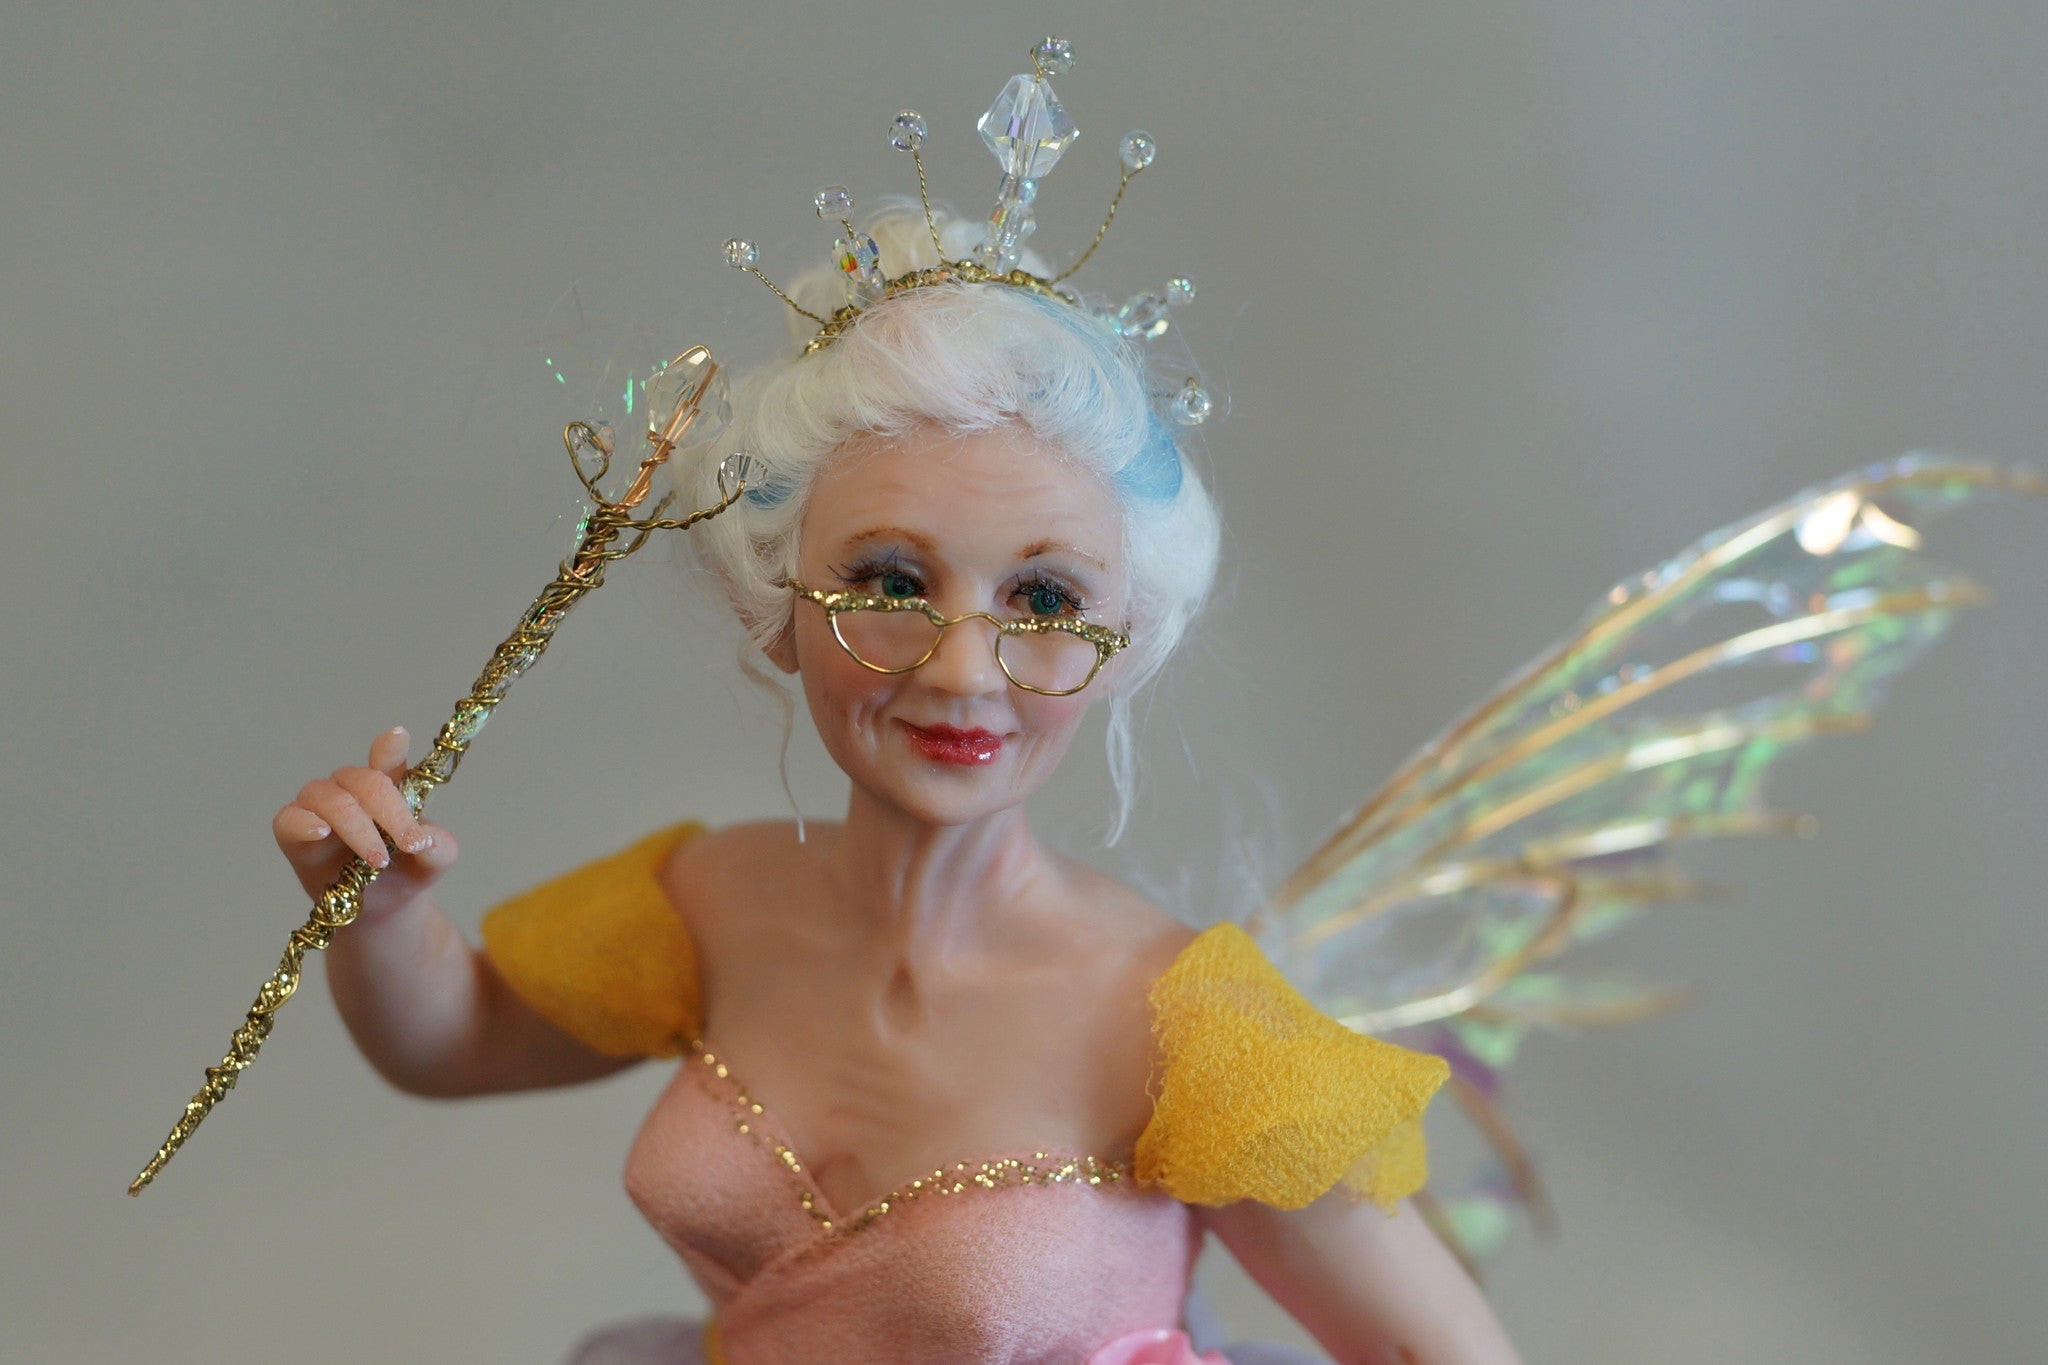 Fairy godmother by Deb Wood - Original Fixed Sculpt Fine Art Doll